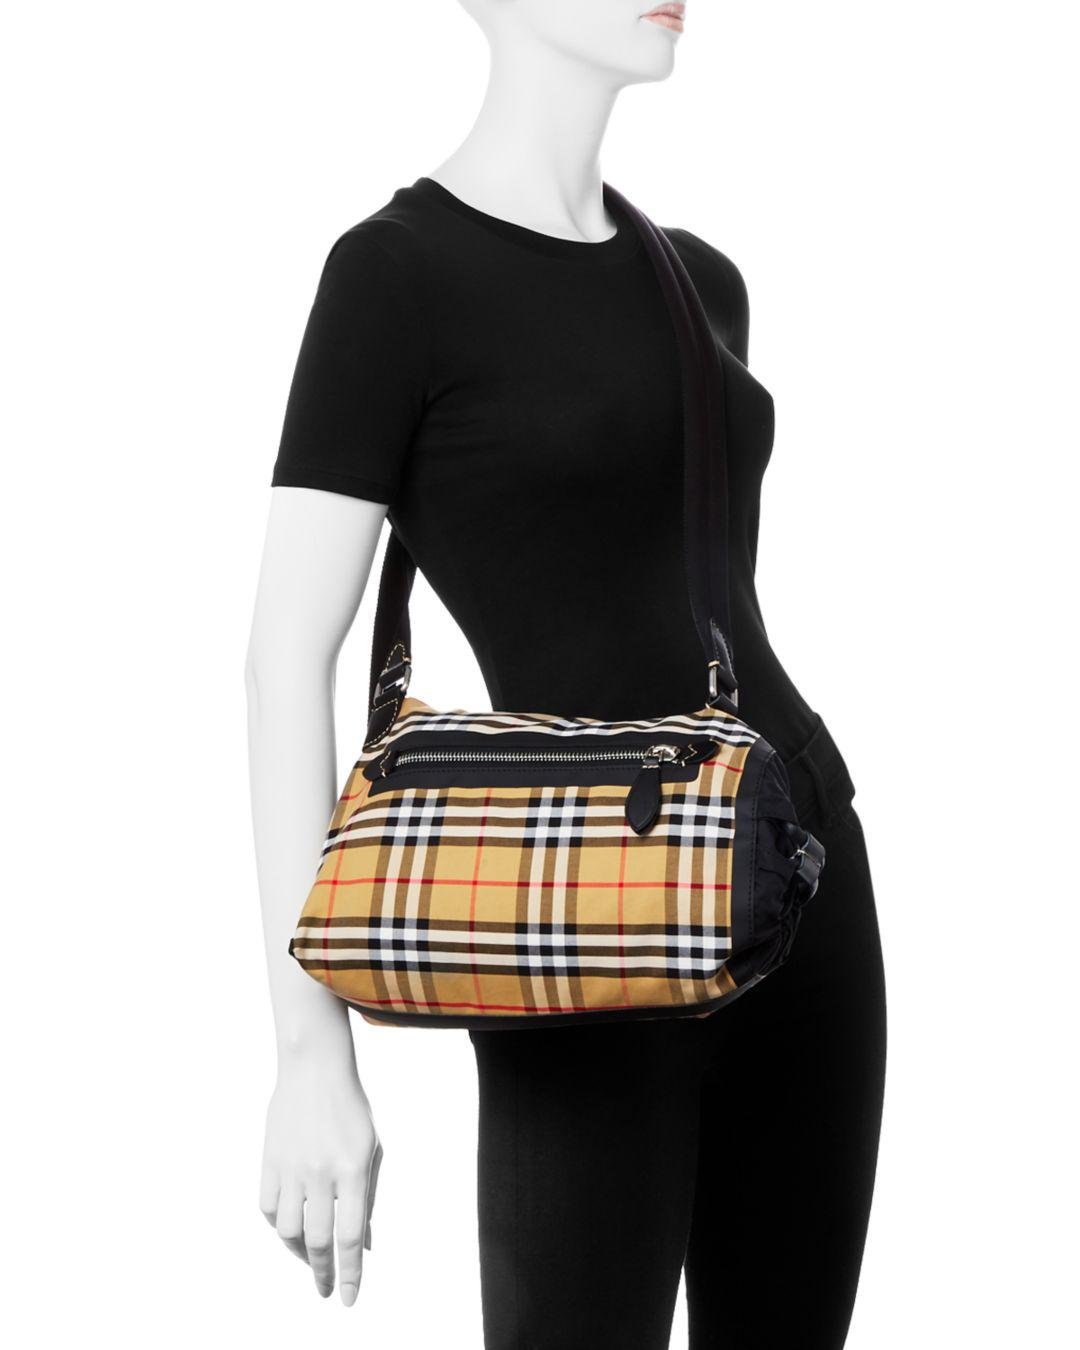 89c134a7f4ad Lyst - Burberry Small Vintage Check Duffel Bag in Black